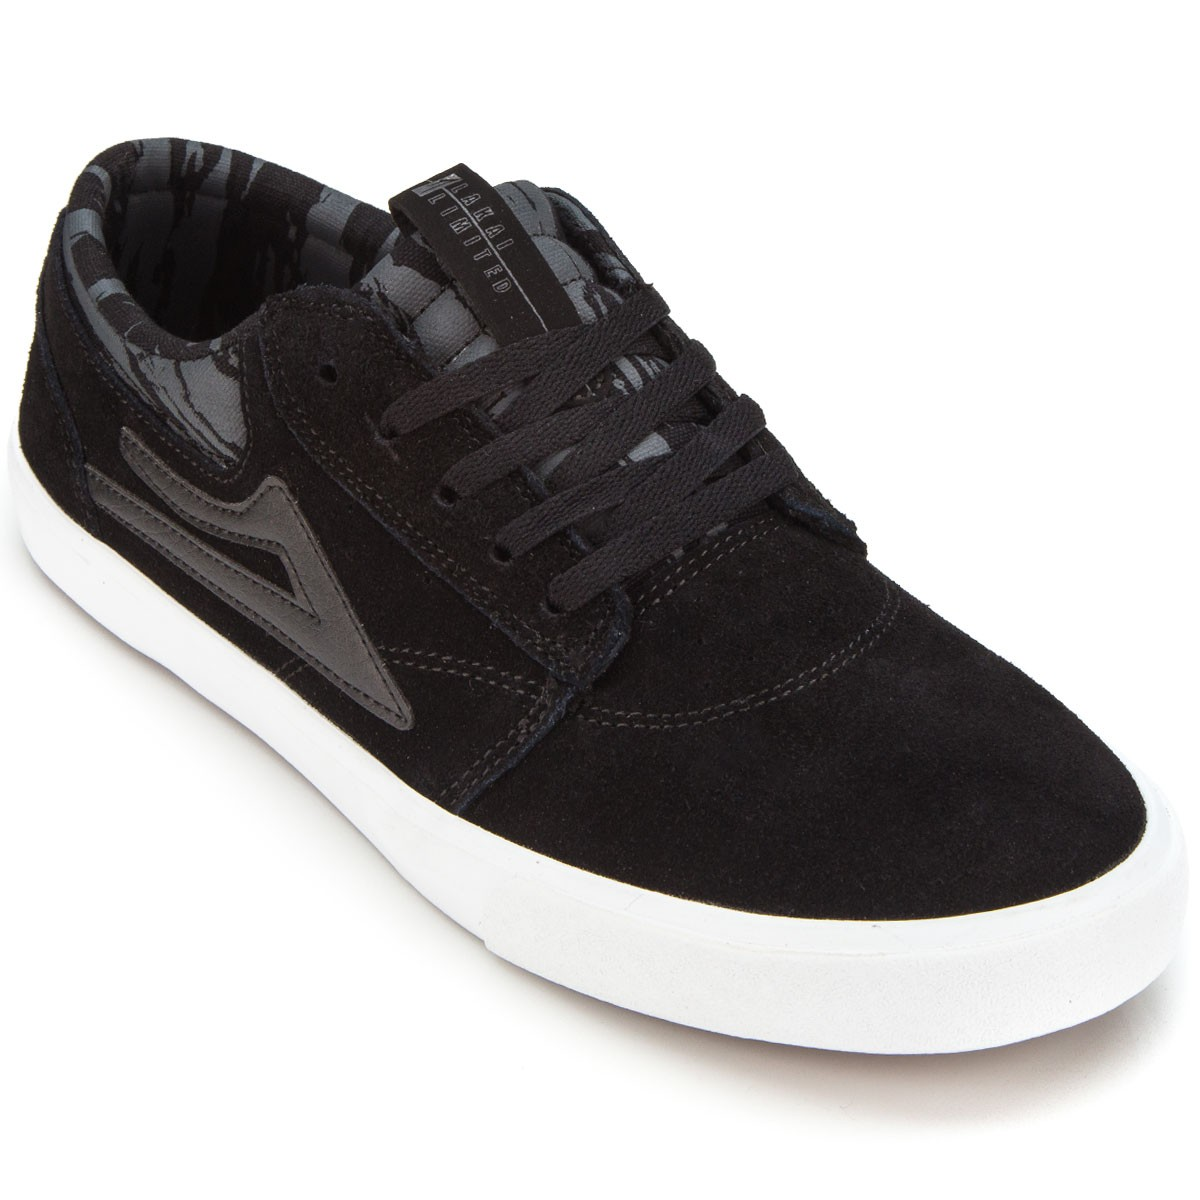 Lakai Griffin Youth Shoes - Black/Grey - 6.0